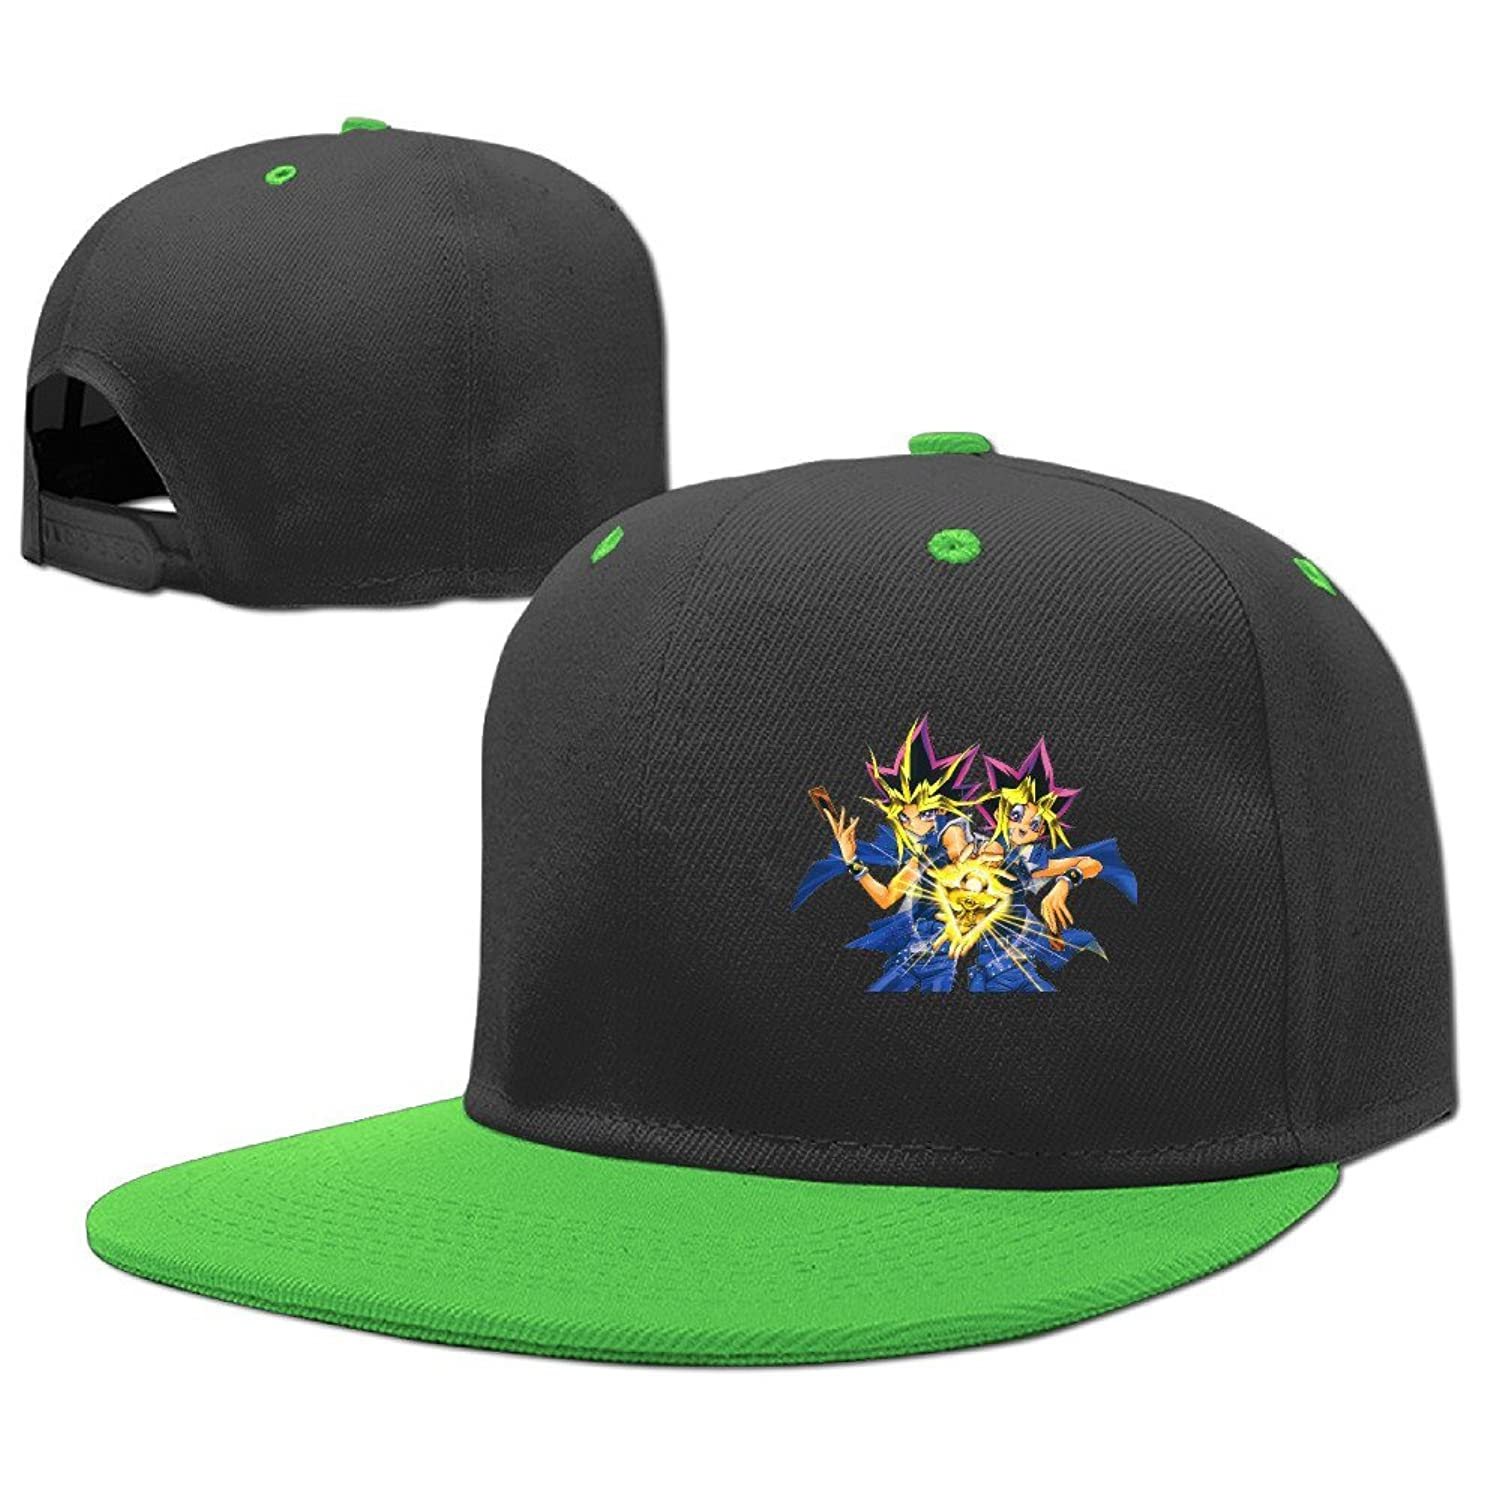 Yu Gi Oh Teen Hiphop Baseball Cap Boys Girls Hat Adjustable Unisex